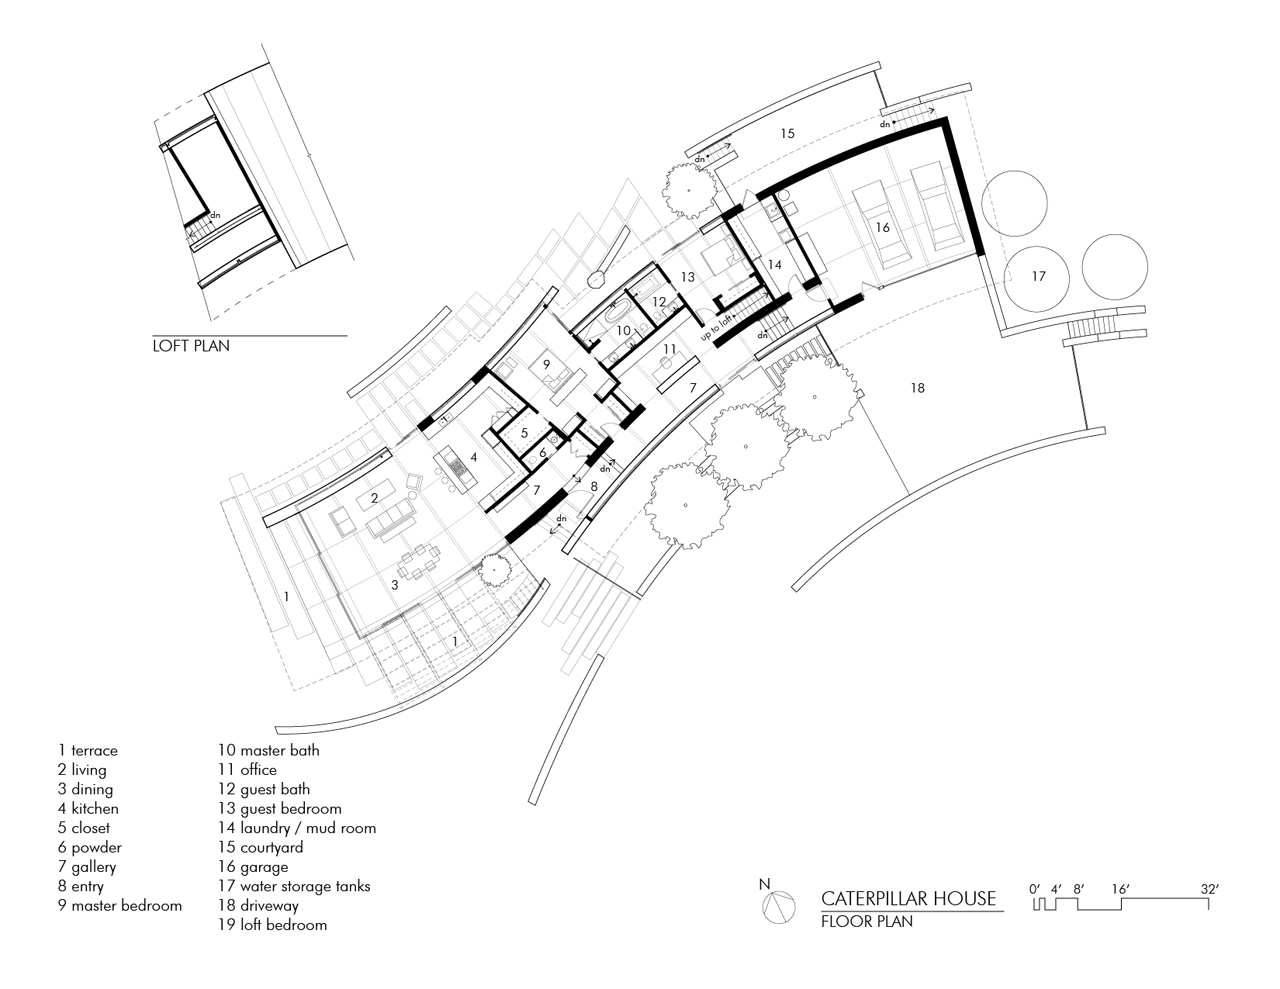 Floor Plan, Caterpillar House in Carmel, California by Feldman Architecture